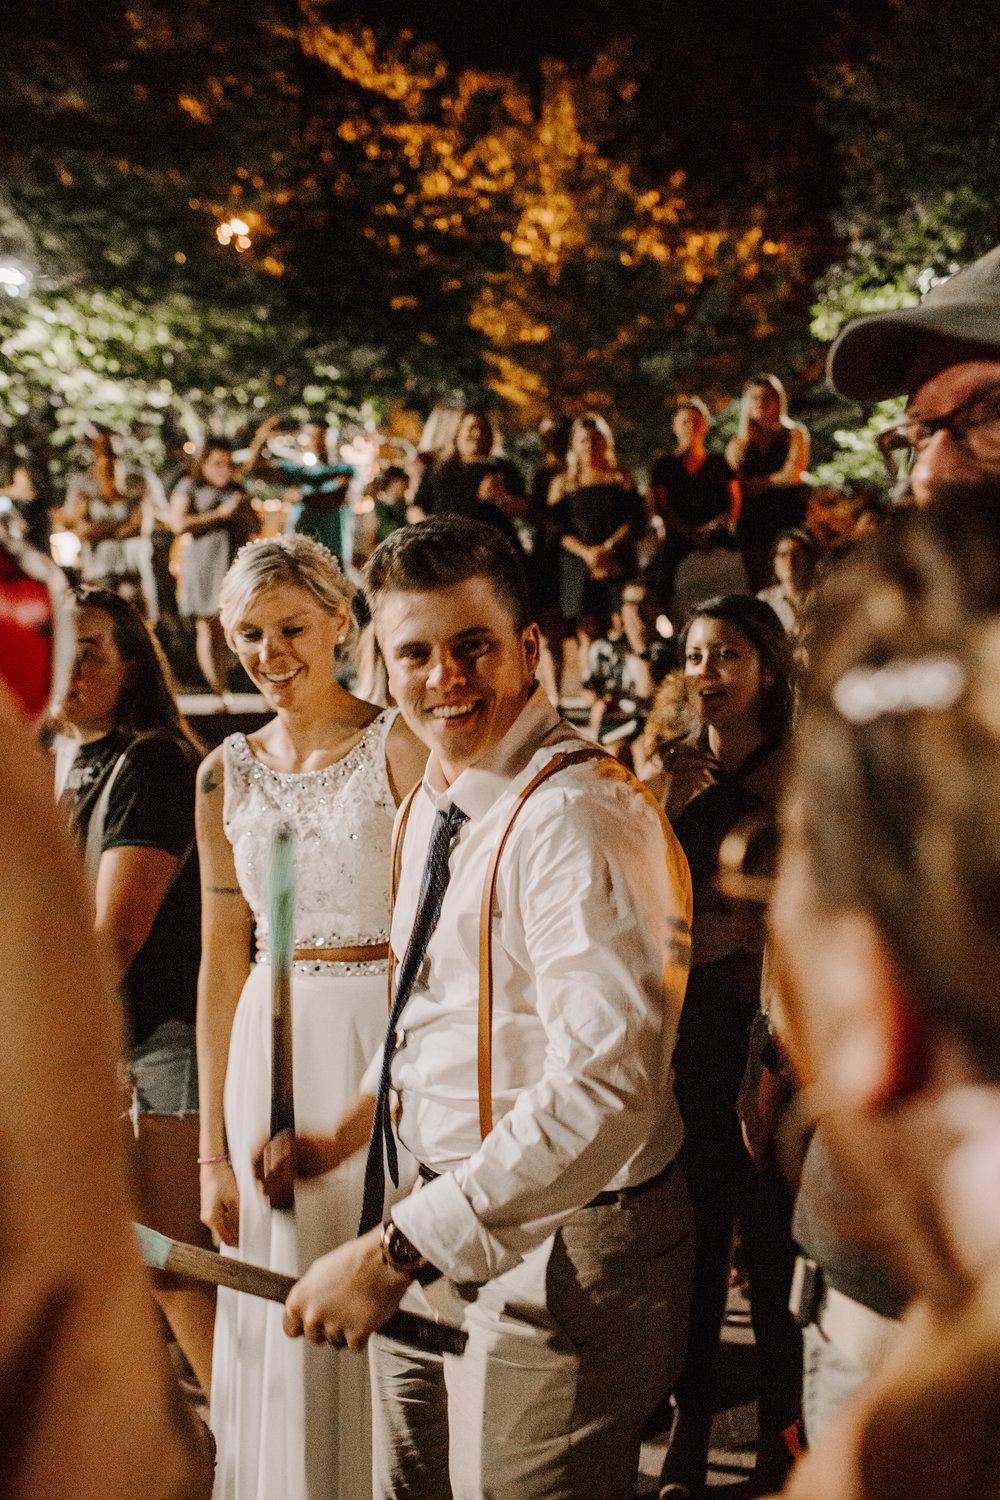 Miranda&braedon_ashevilleelopement (6 of 101).jpg